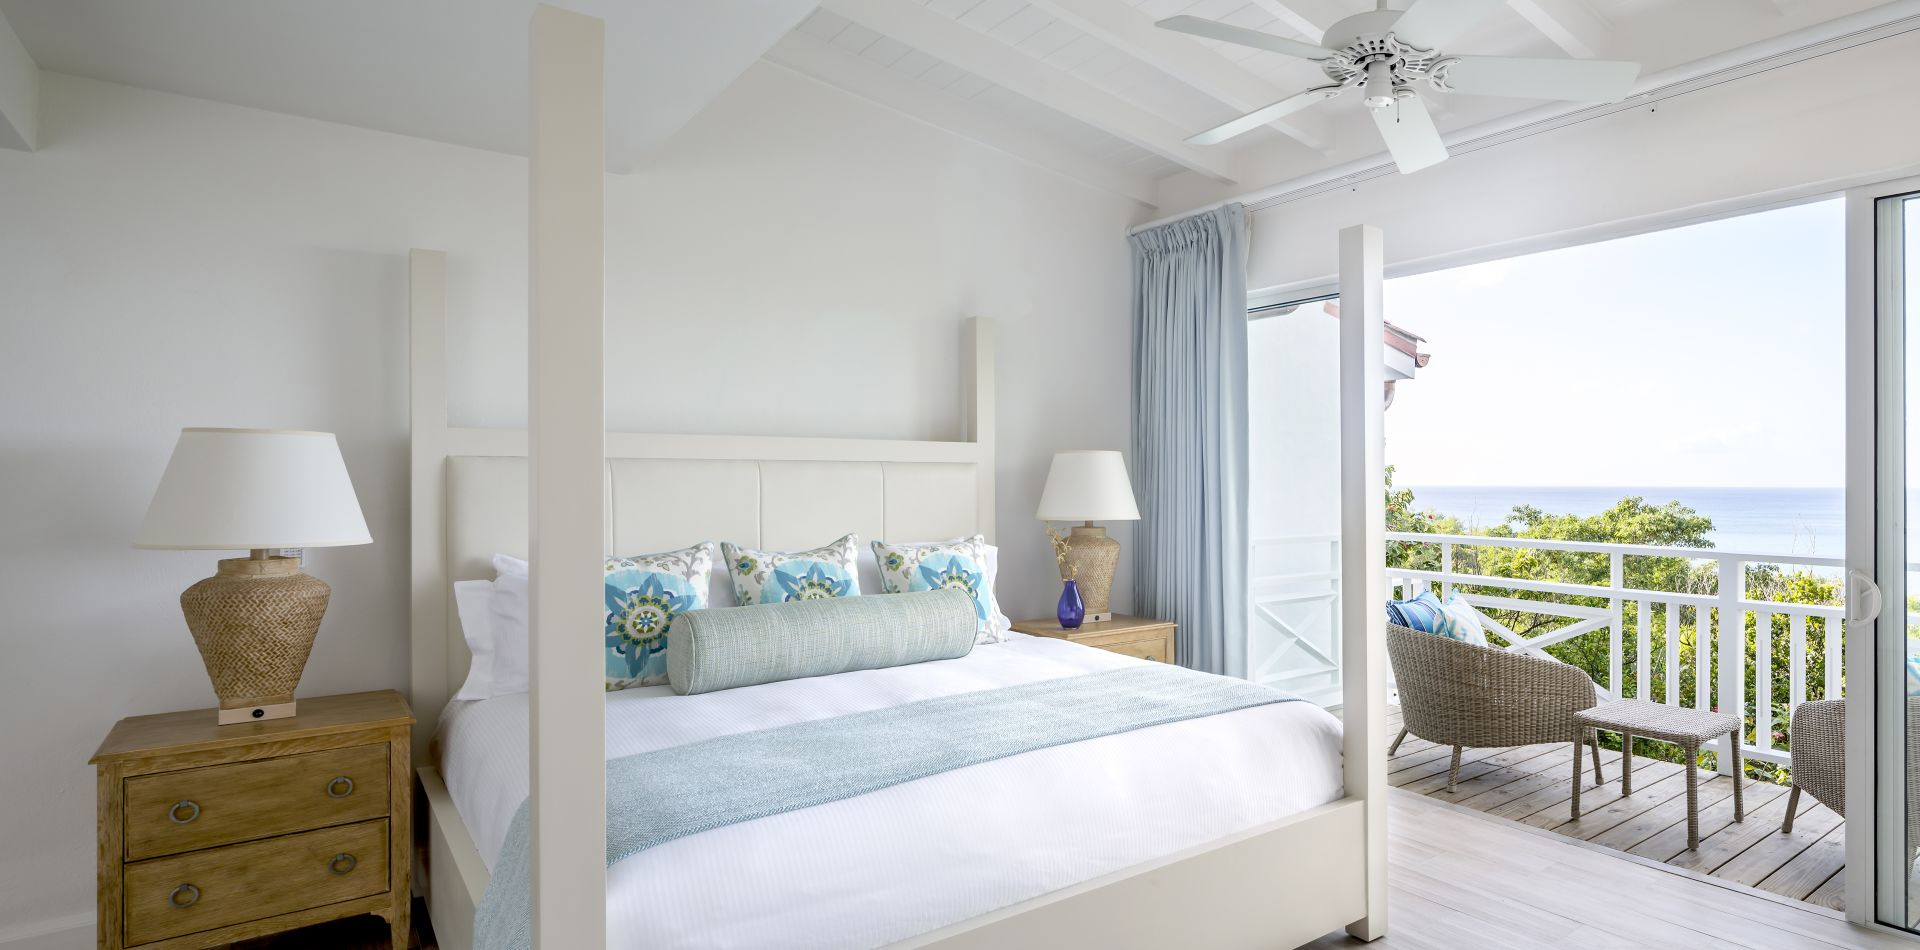 St Lucia romantic resort bedroom with balcony